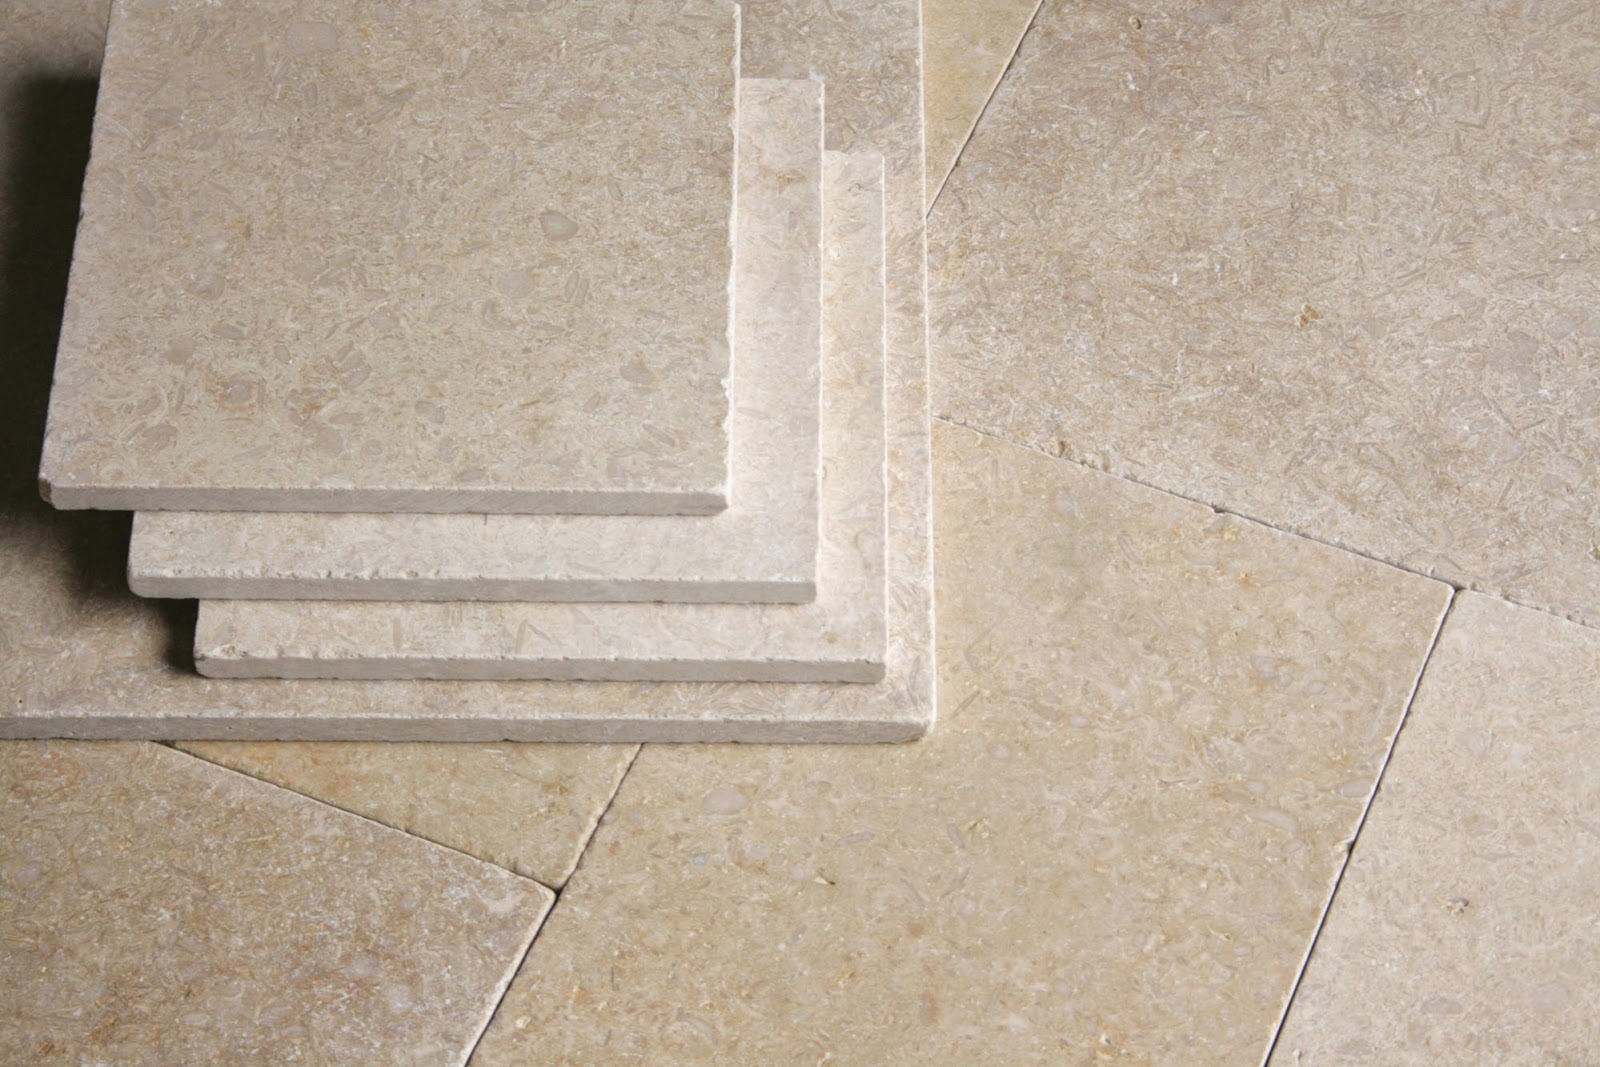 How To Remove Grease Stains From Limestone